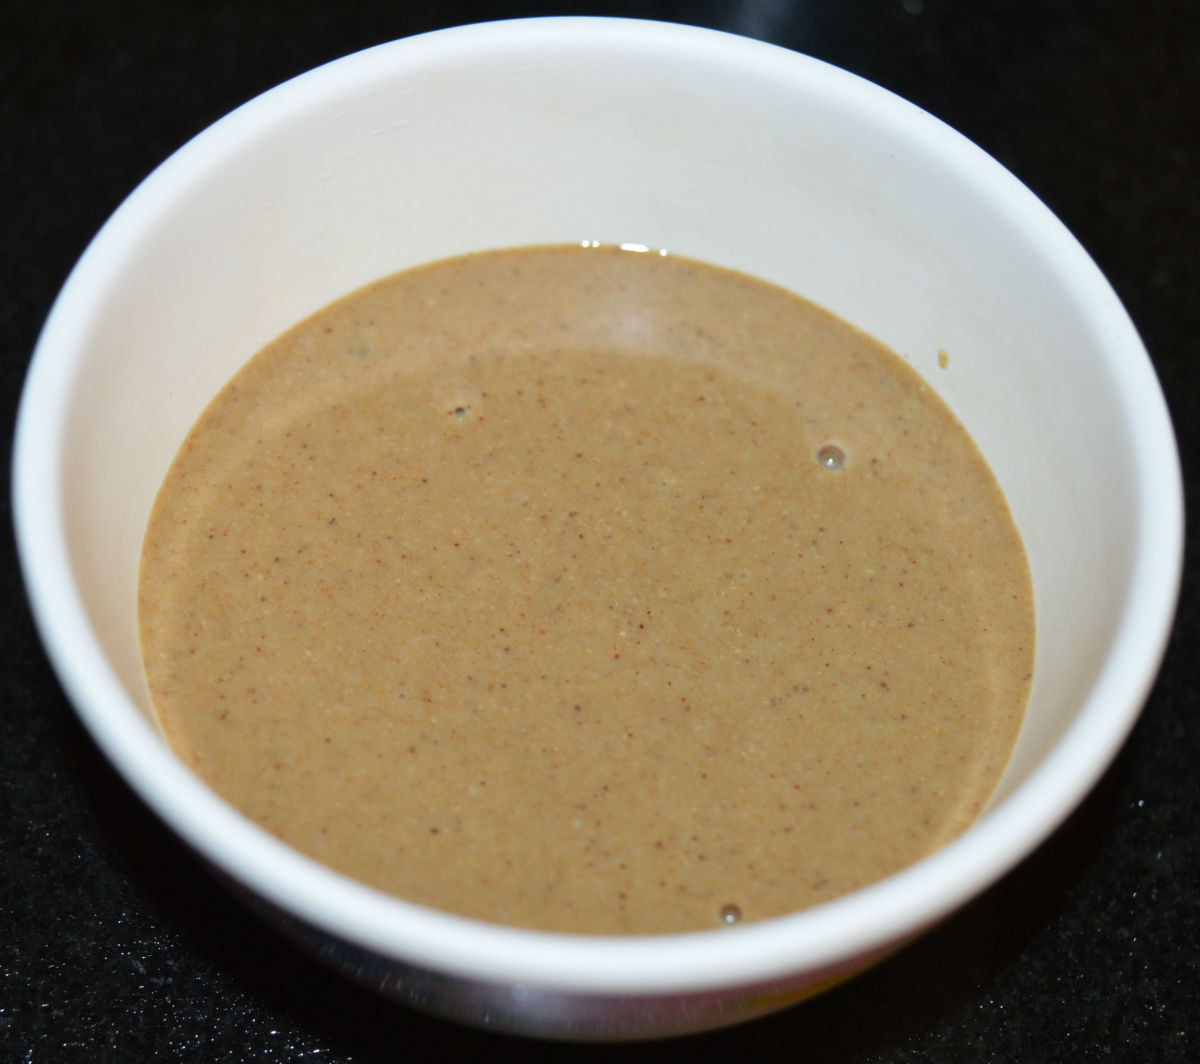 How to Make Tahini (Sesame Seed Paste)